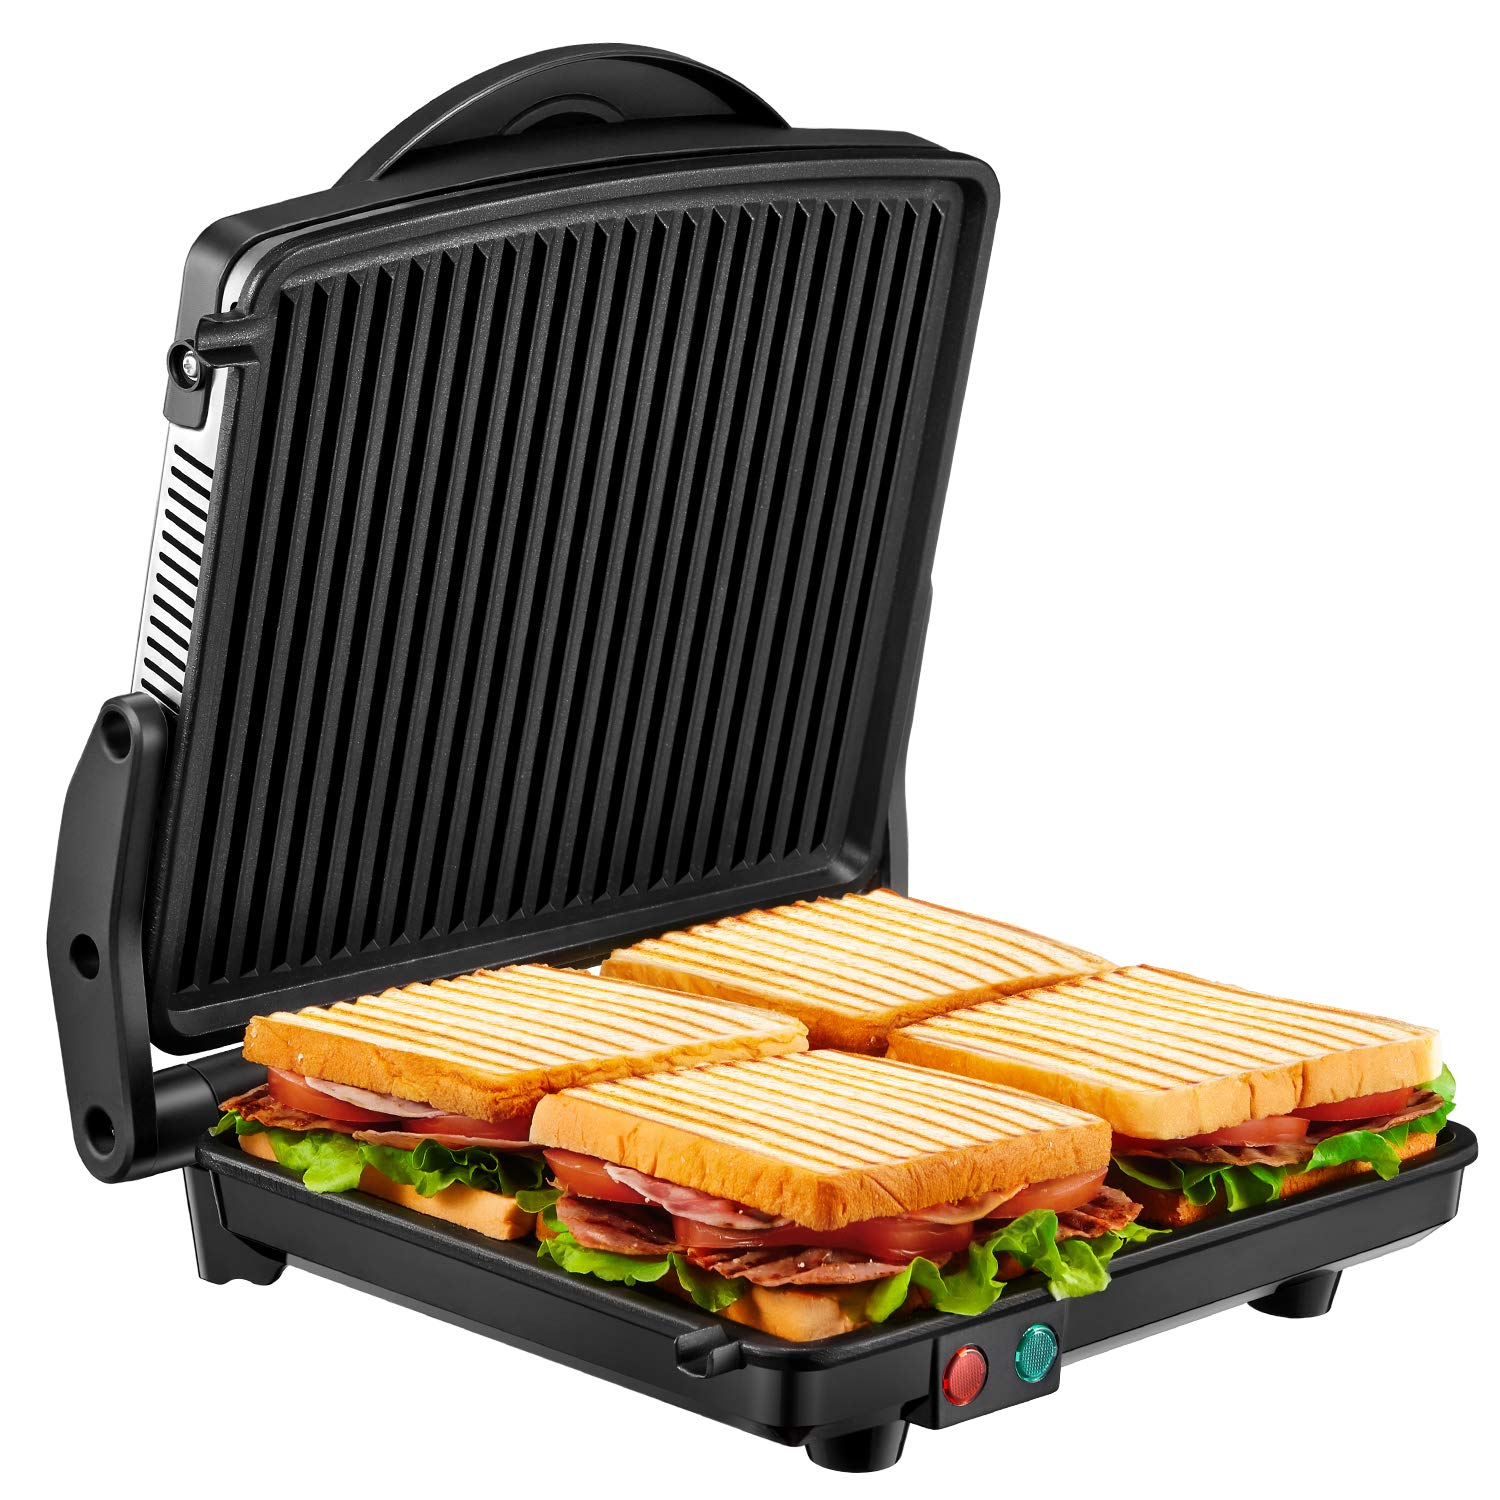 Panini Press Grill, Kealive 4-Slice Extra Large Gourmet Sandwich Maker Grill, Opens 180 Degrees to Fit Any Type or Size of Food, Non-Stick Coated Plates, Stainless Steel Surface and Drip Tray, 1200W by kealive